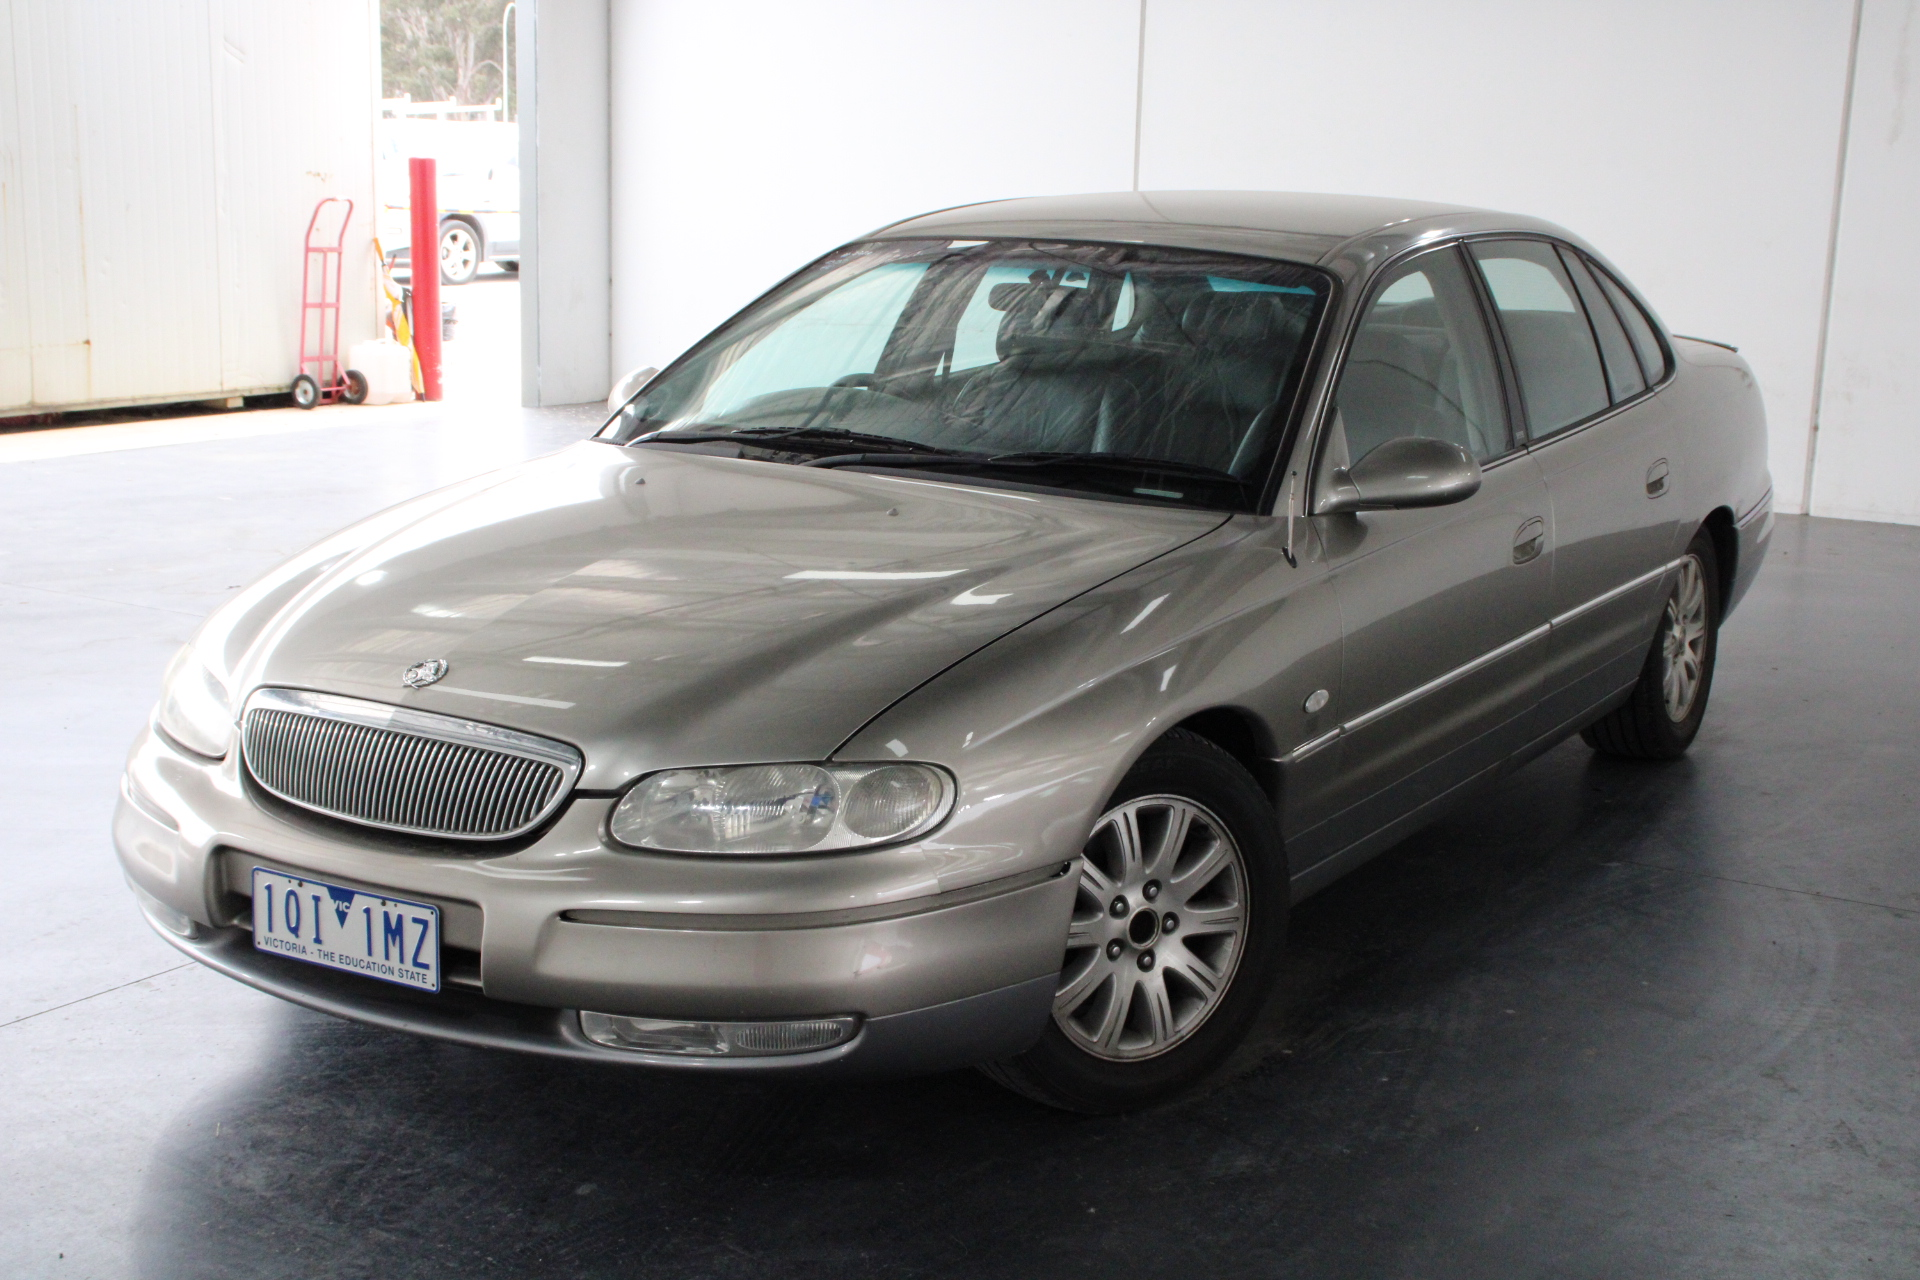 2000 Holden Statesman Supercharged V6 WH Automatic Sedan